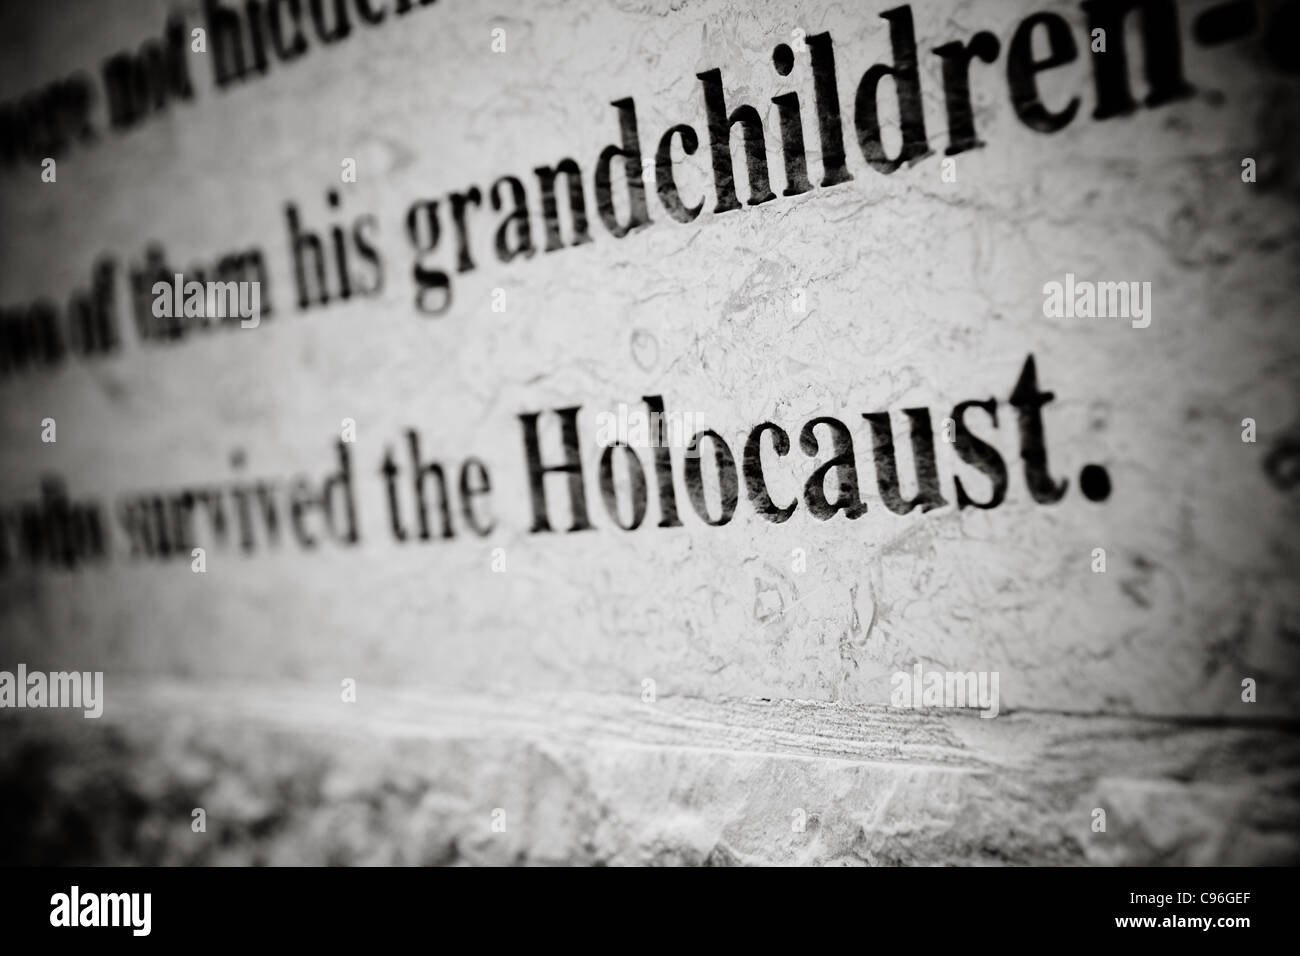 Holocaust stone carving - Stock Image